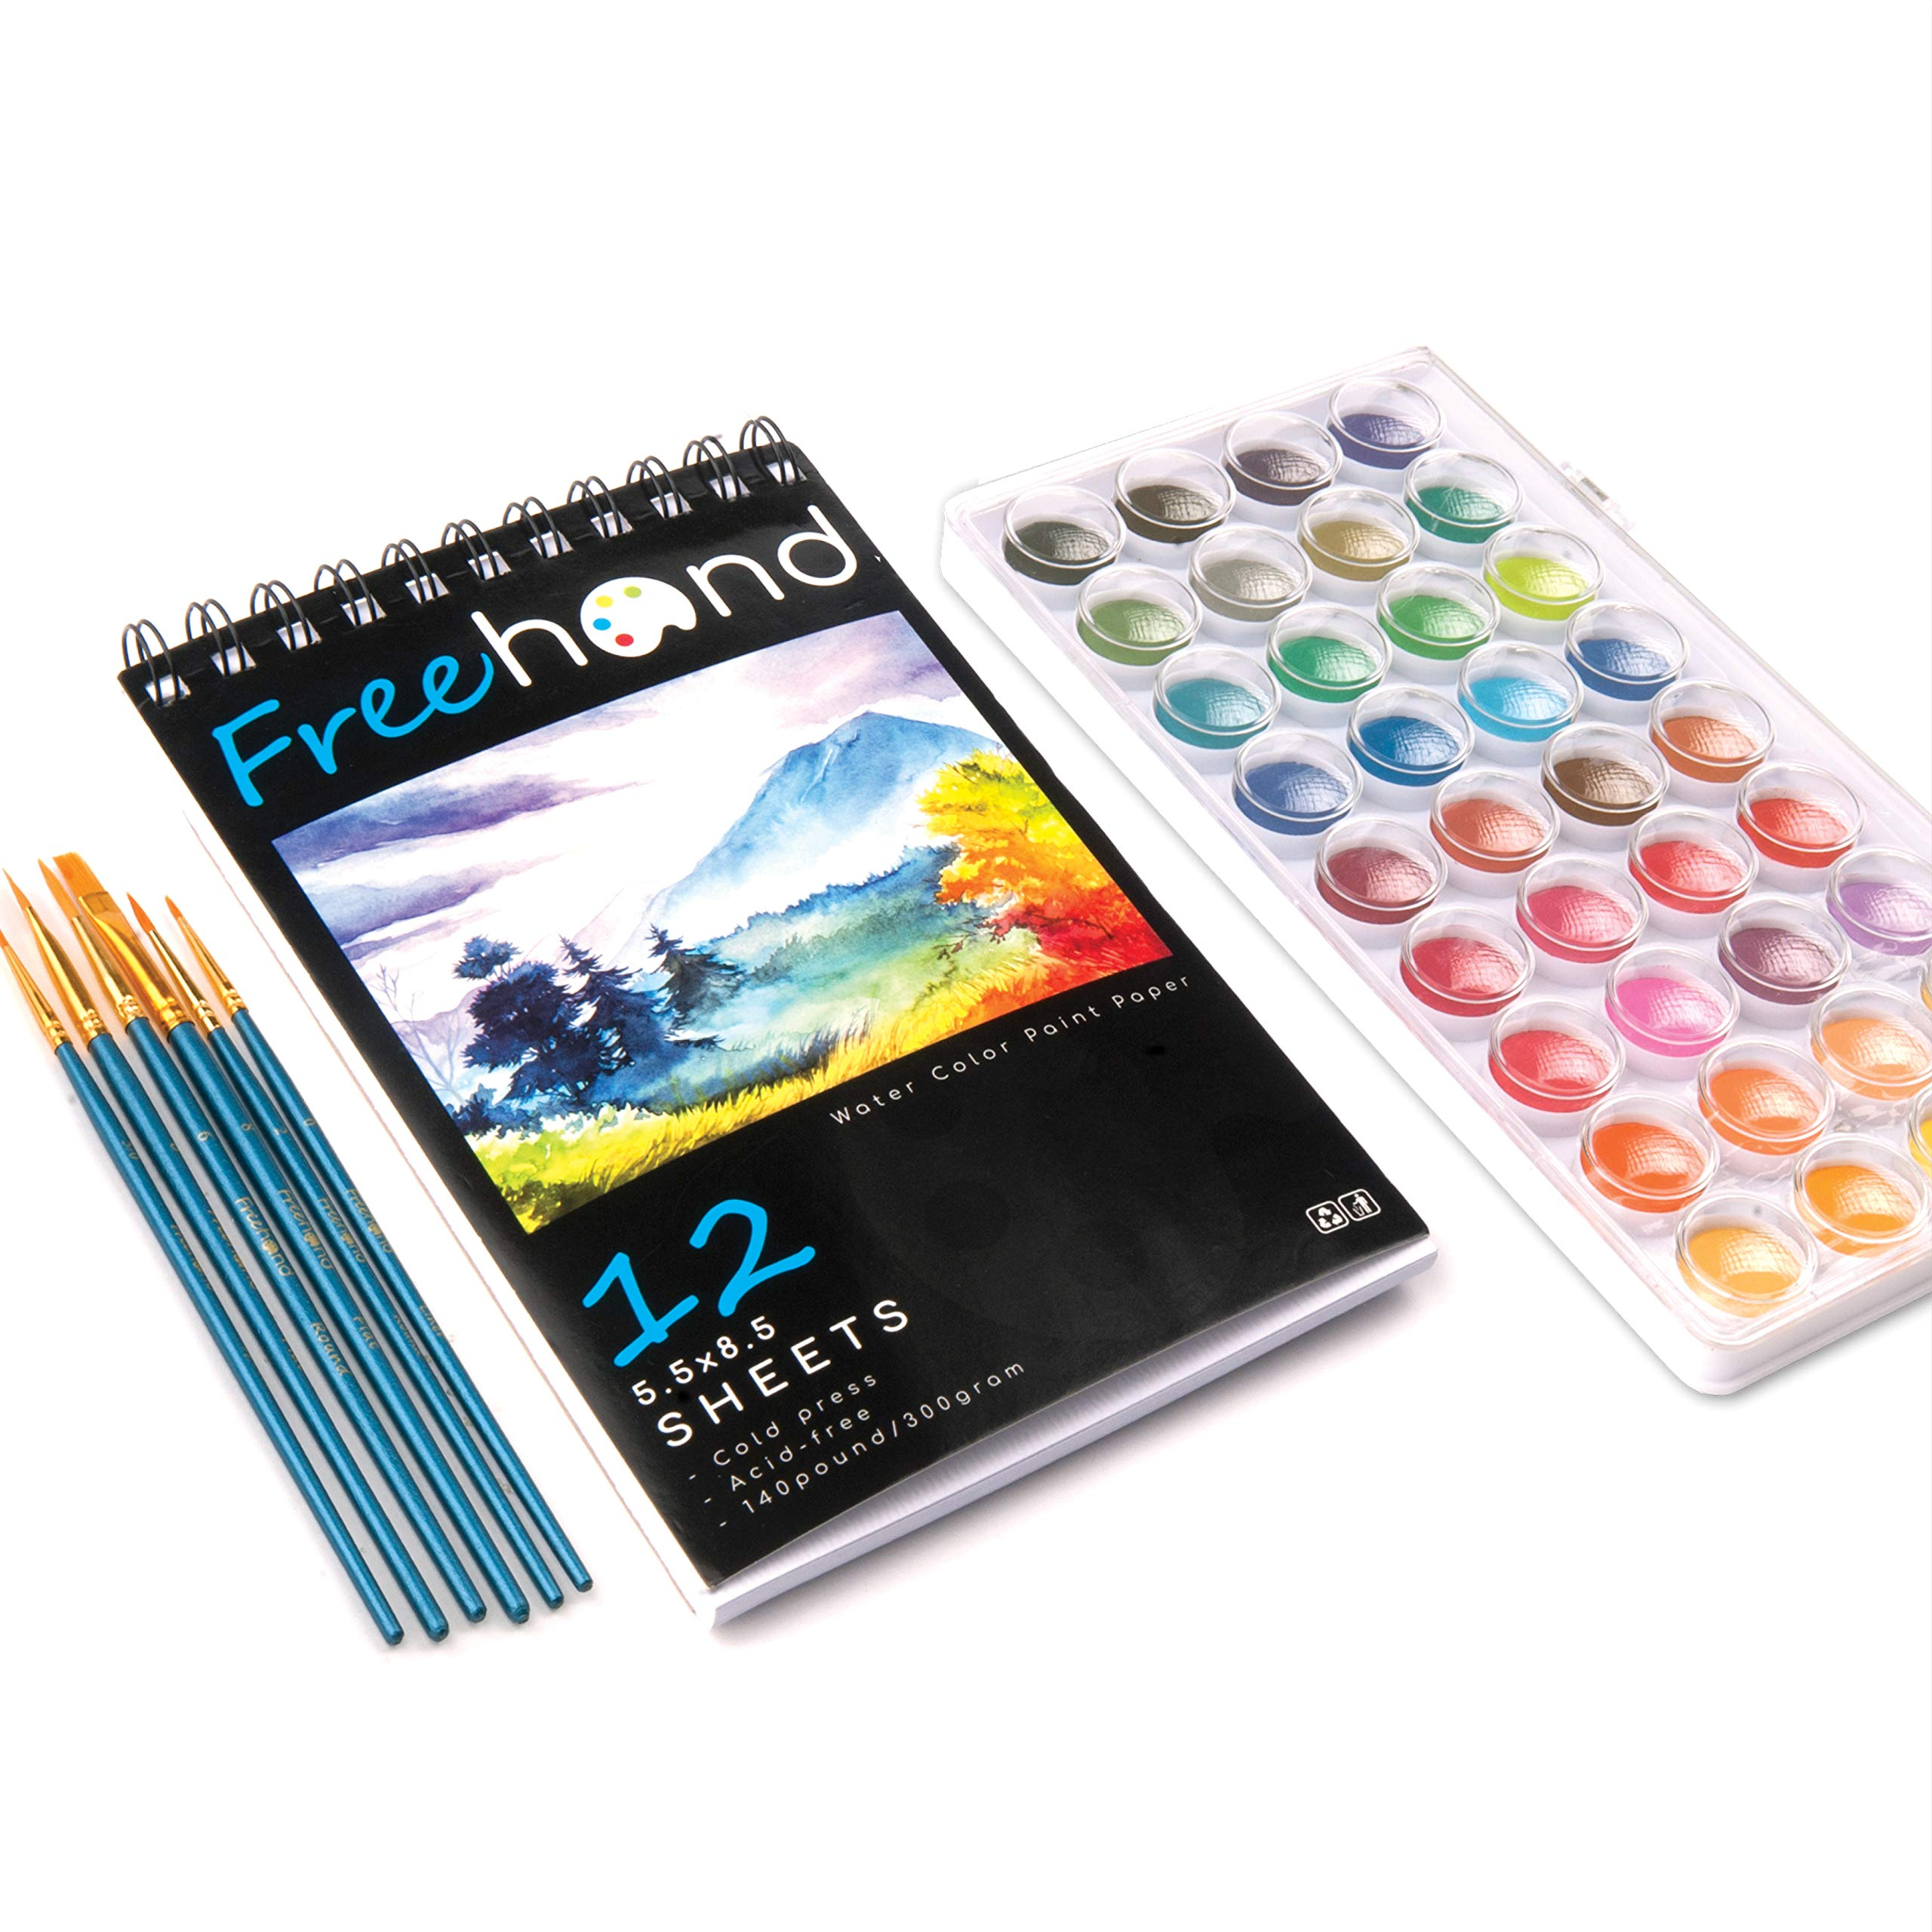 Water Color Paint Set - 36 Premium Water Color Paints - 12 Page Water Color Paint Pad - 6 Paint Brushes - Art Supplies for Teens, Adults & Kids